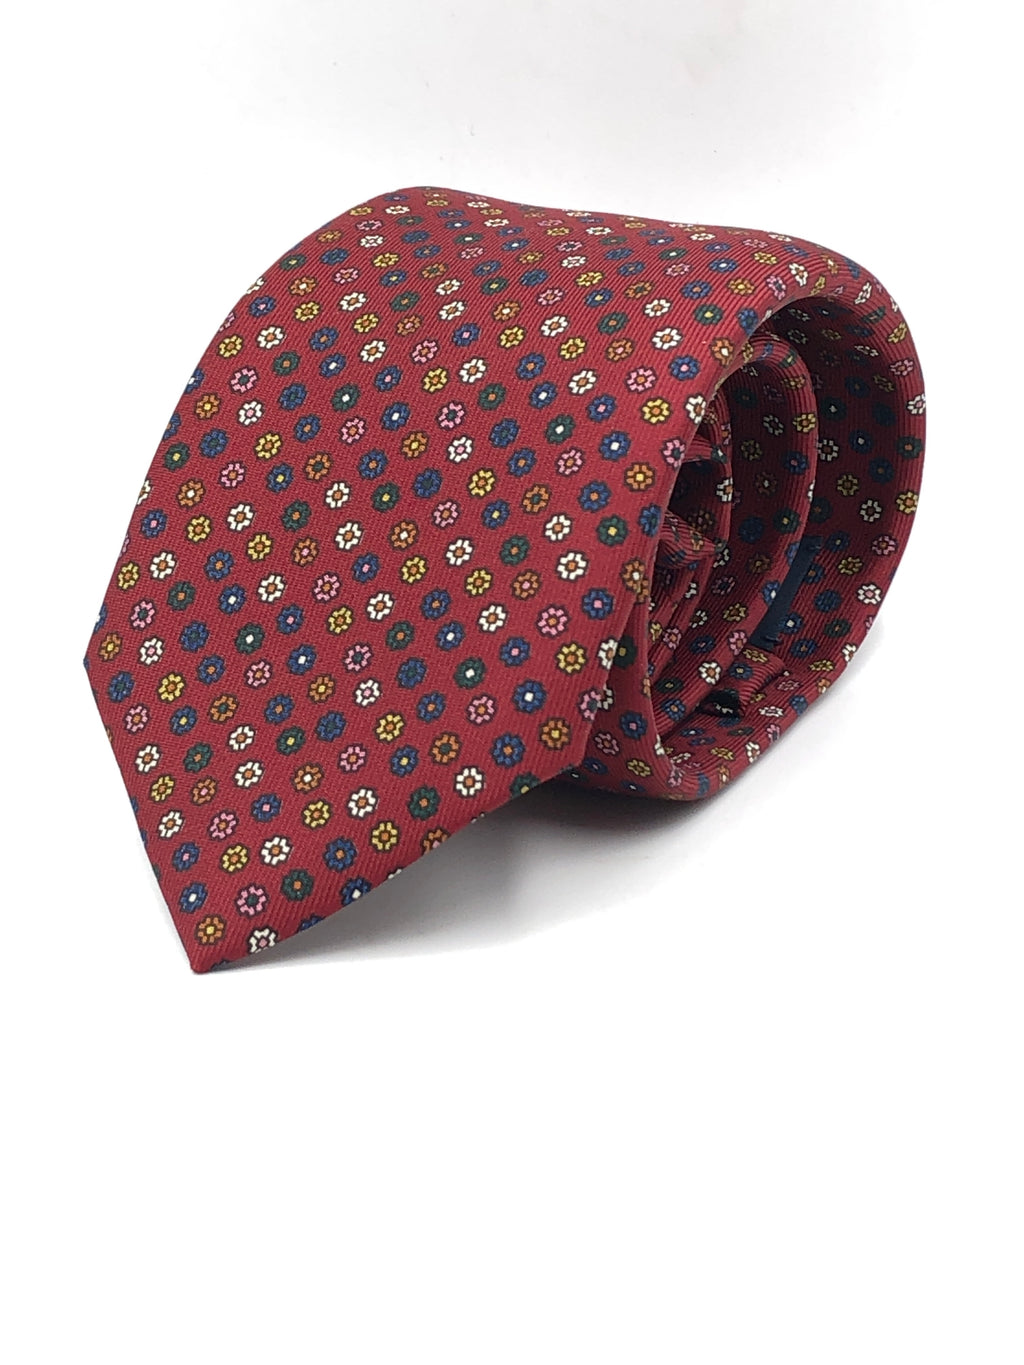 Drake's - 36 oz - Printed Silk - Burgundy, pink, white, blue and green flower motif tie #2918